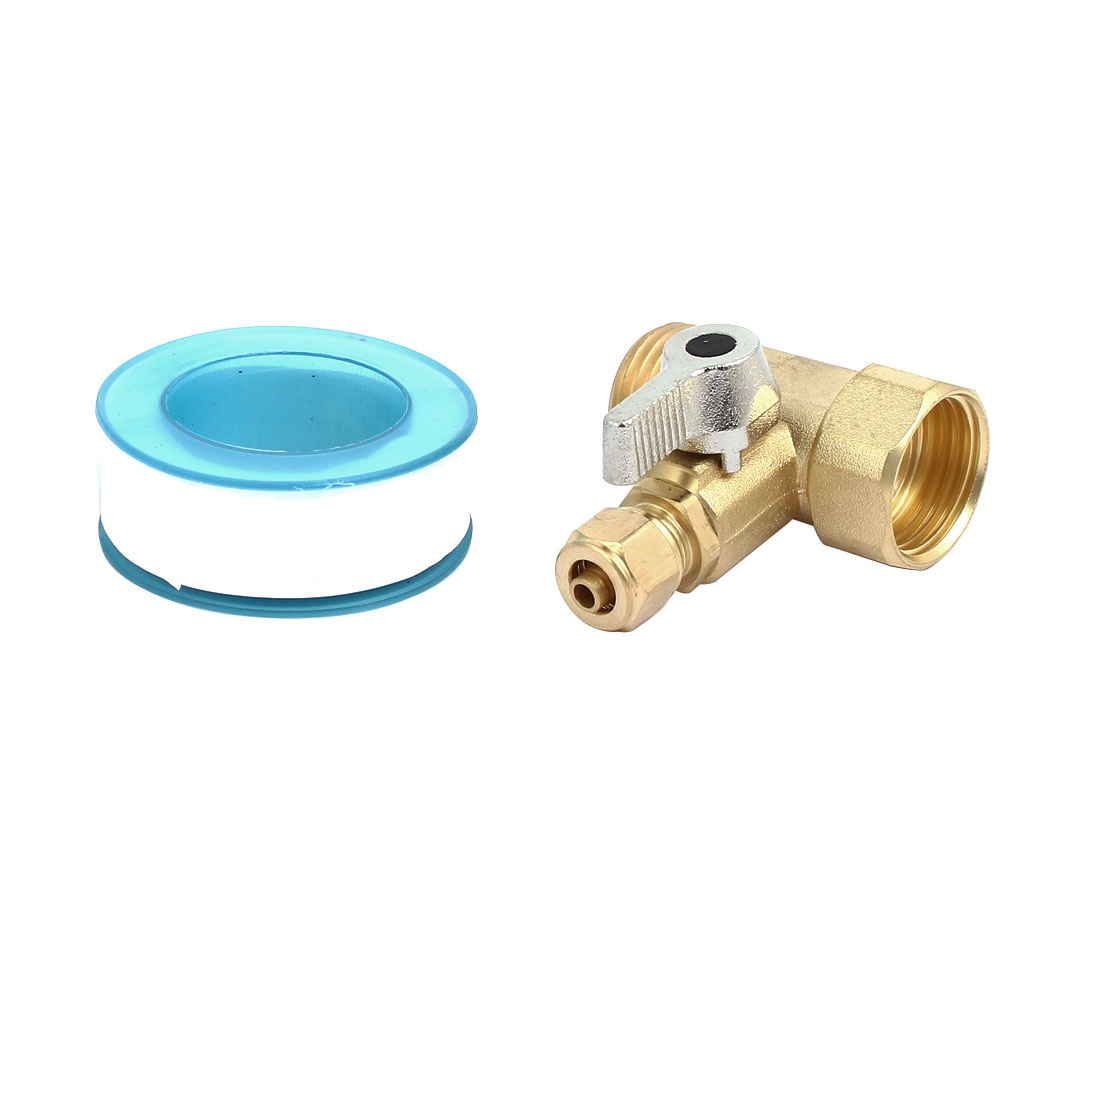 1/2BSPx1/4BSP 3-Way Filter Ball Valve Faucet Tap for RO Water System